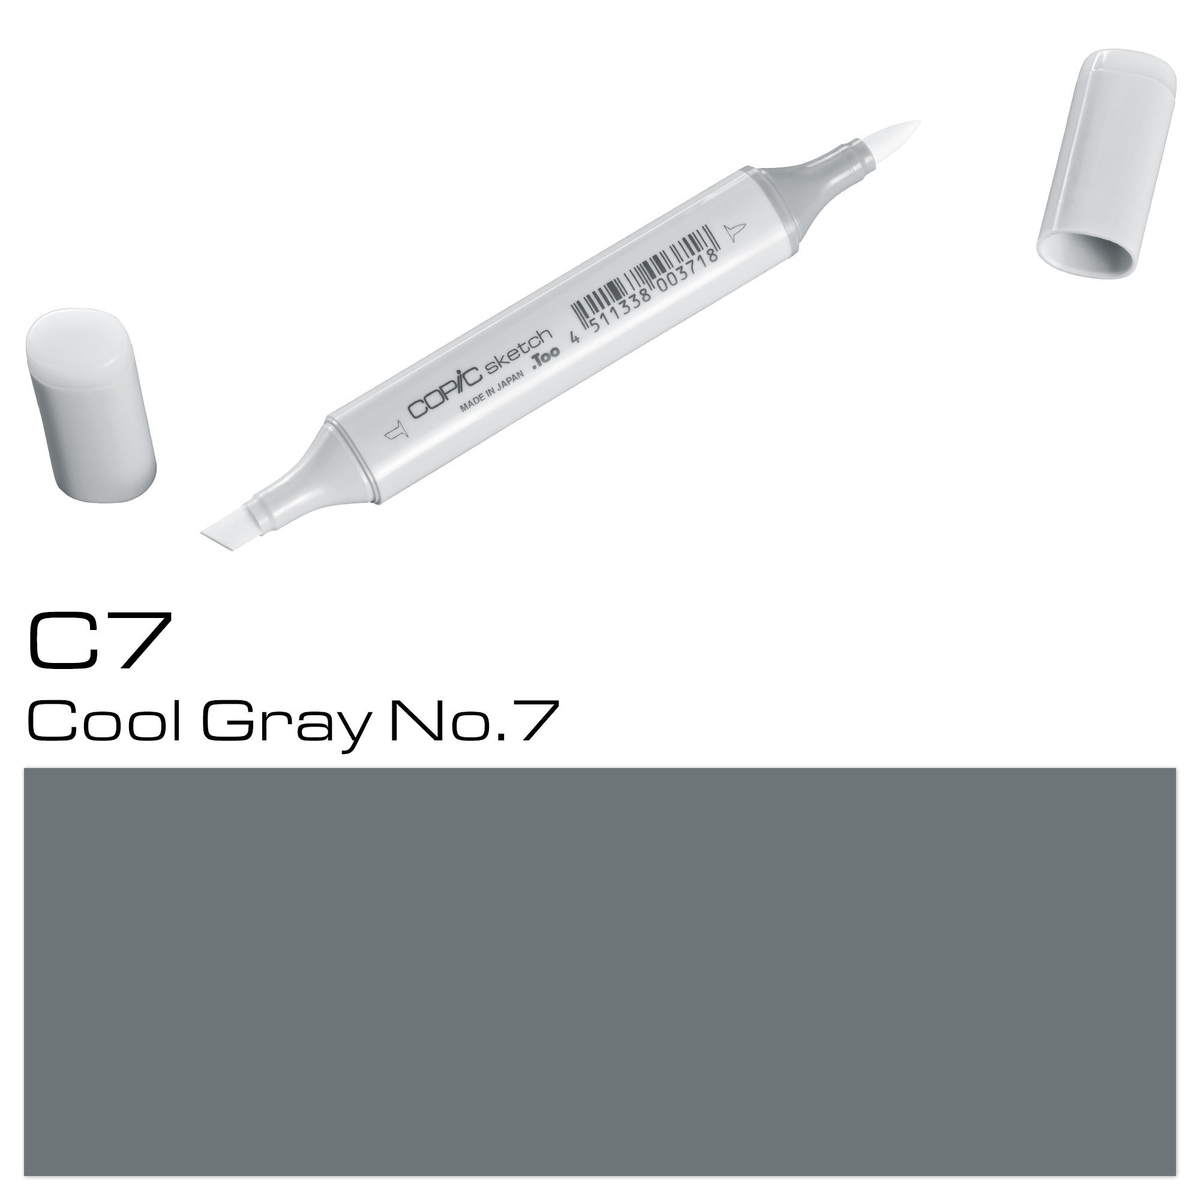 Copic Sketch C 7 cool gray